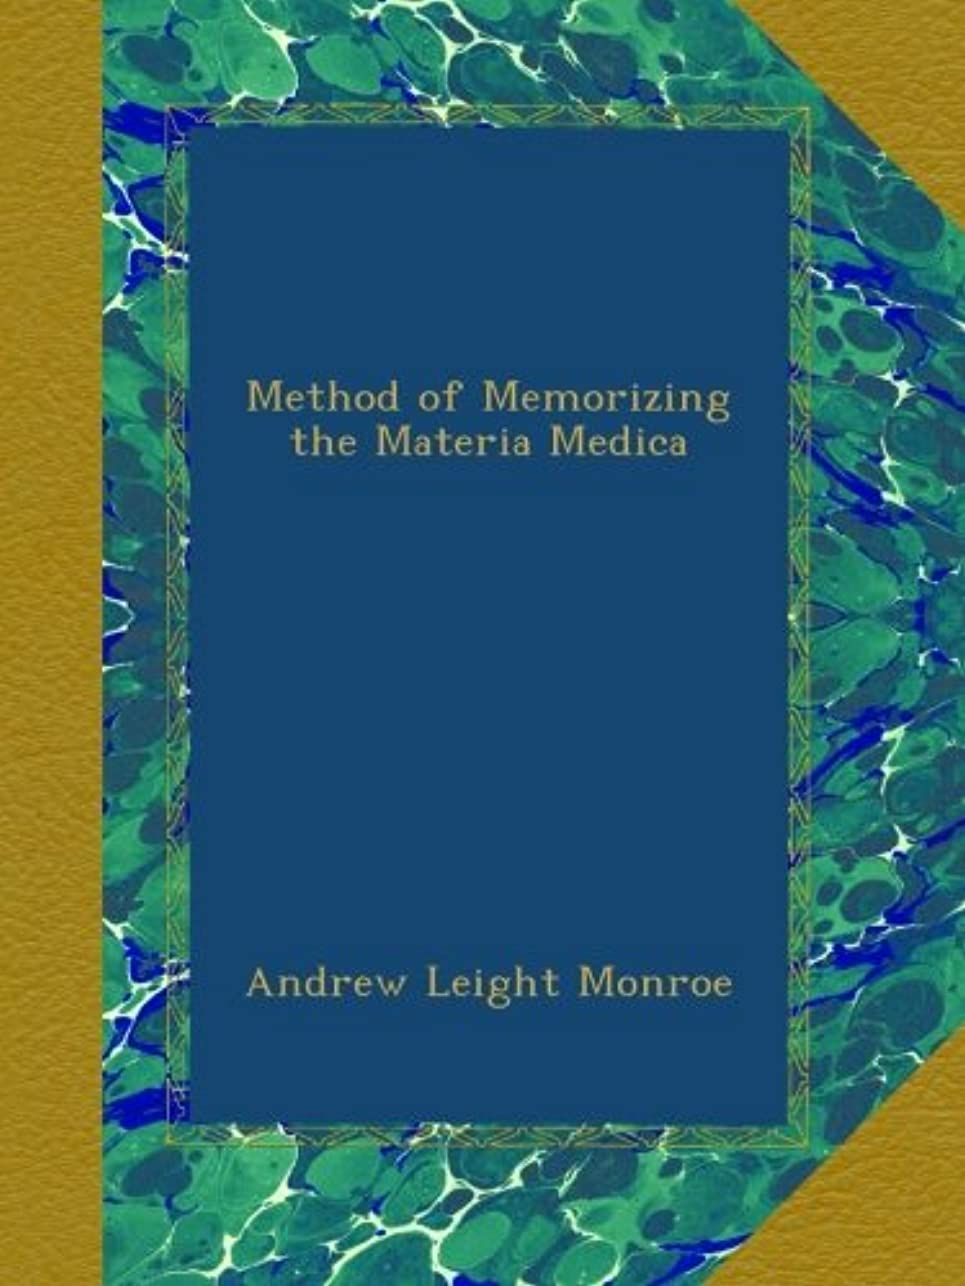 ターミナル遠洋の妖精Method of Memorizing the Materia Medica